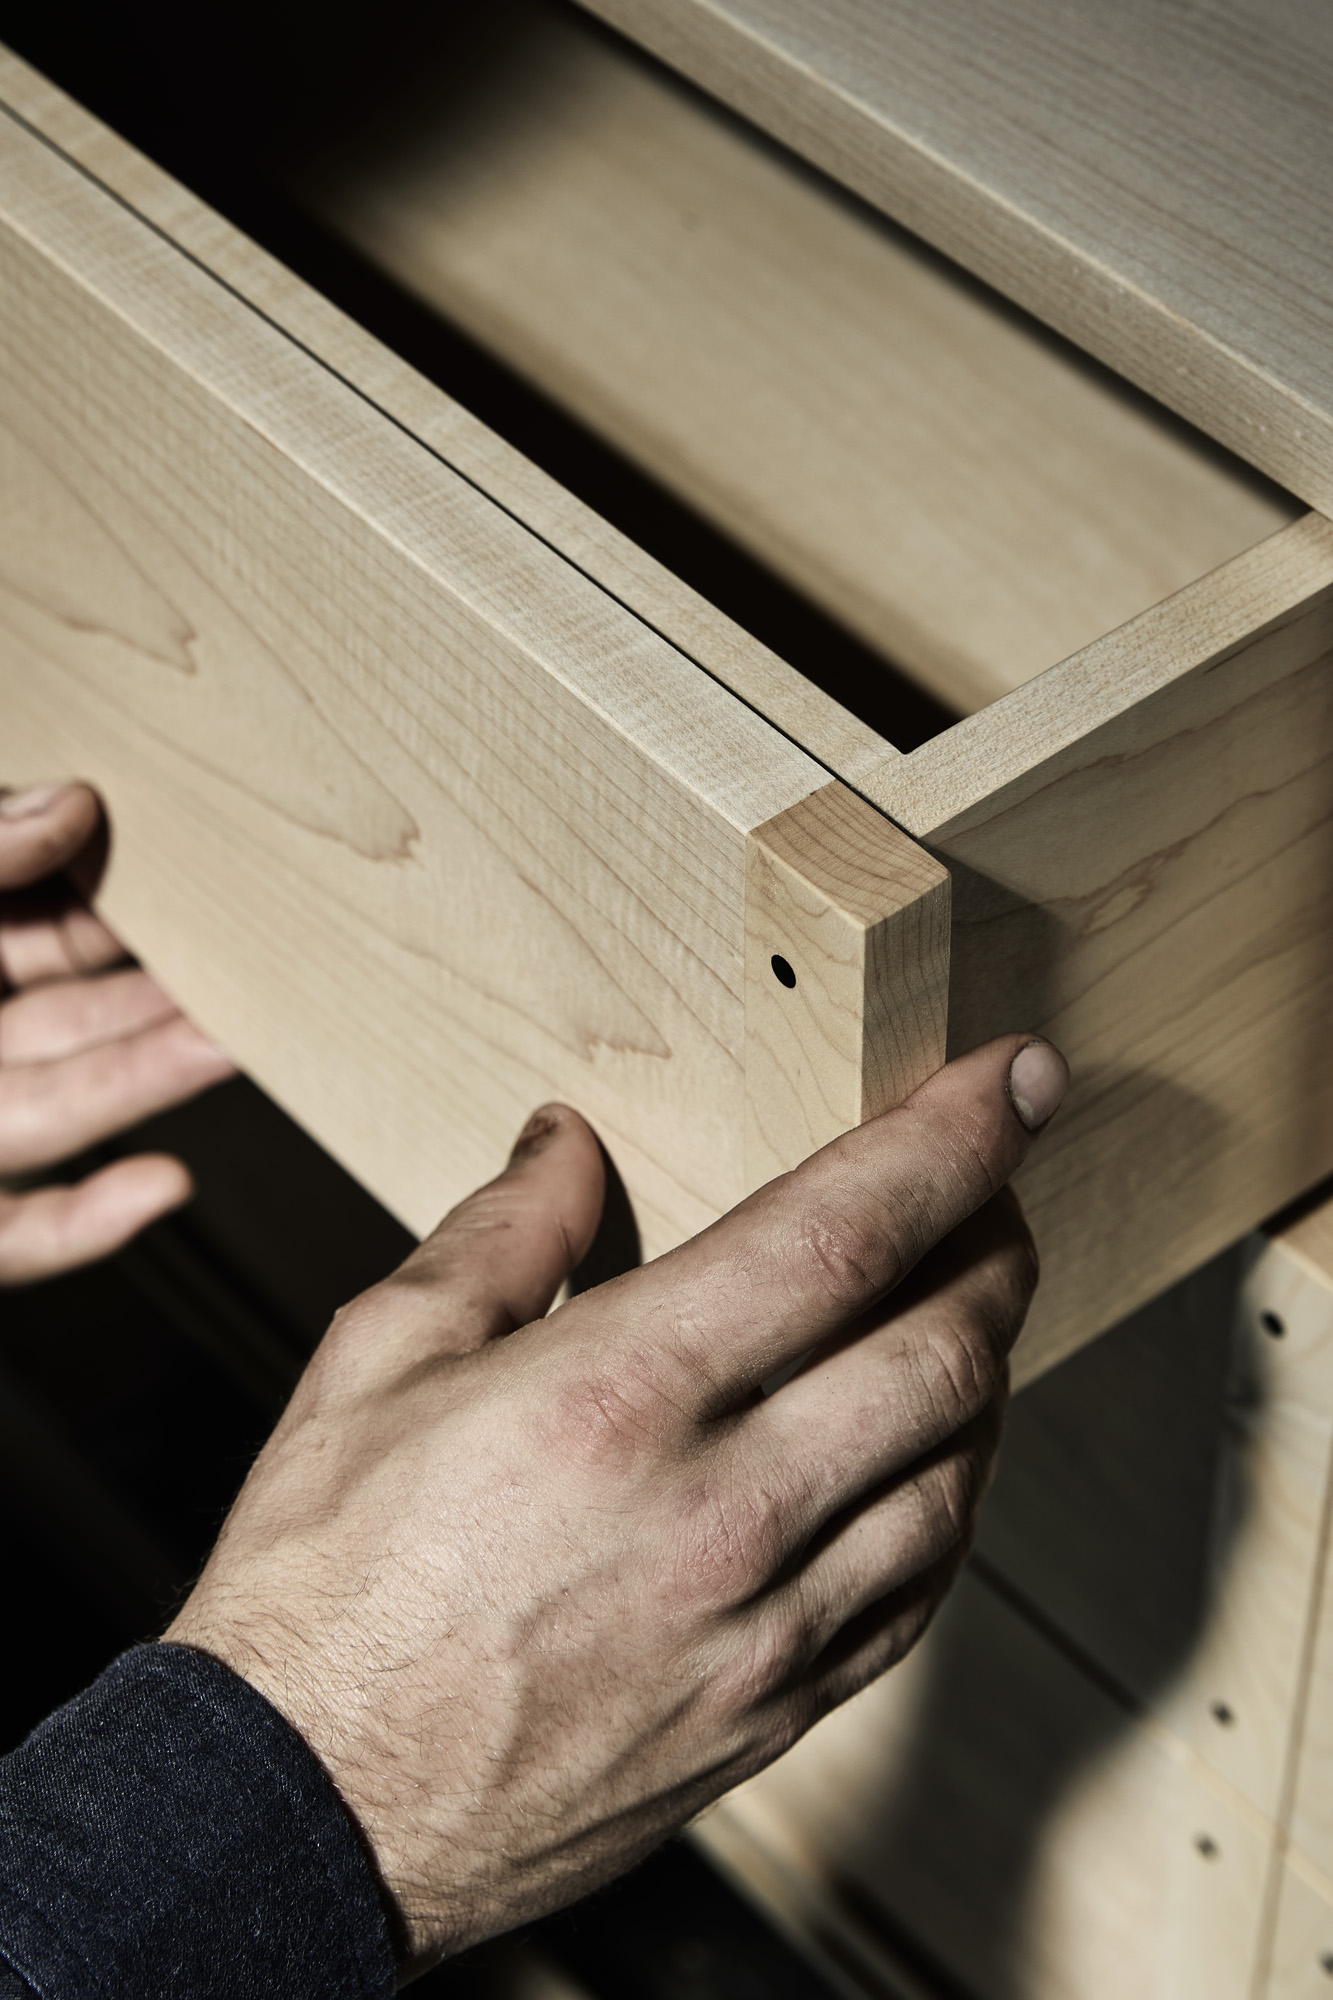 Woodworker Detailing Wood Furniture - Designer Maker Daniel Poole - The Local Project